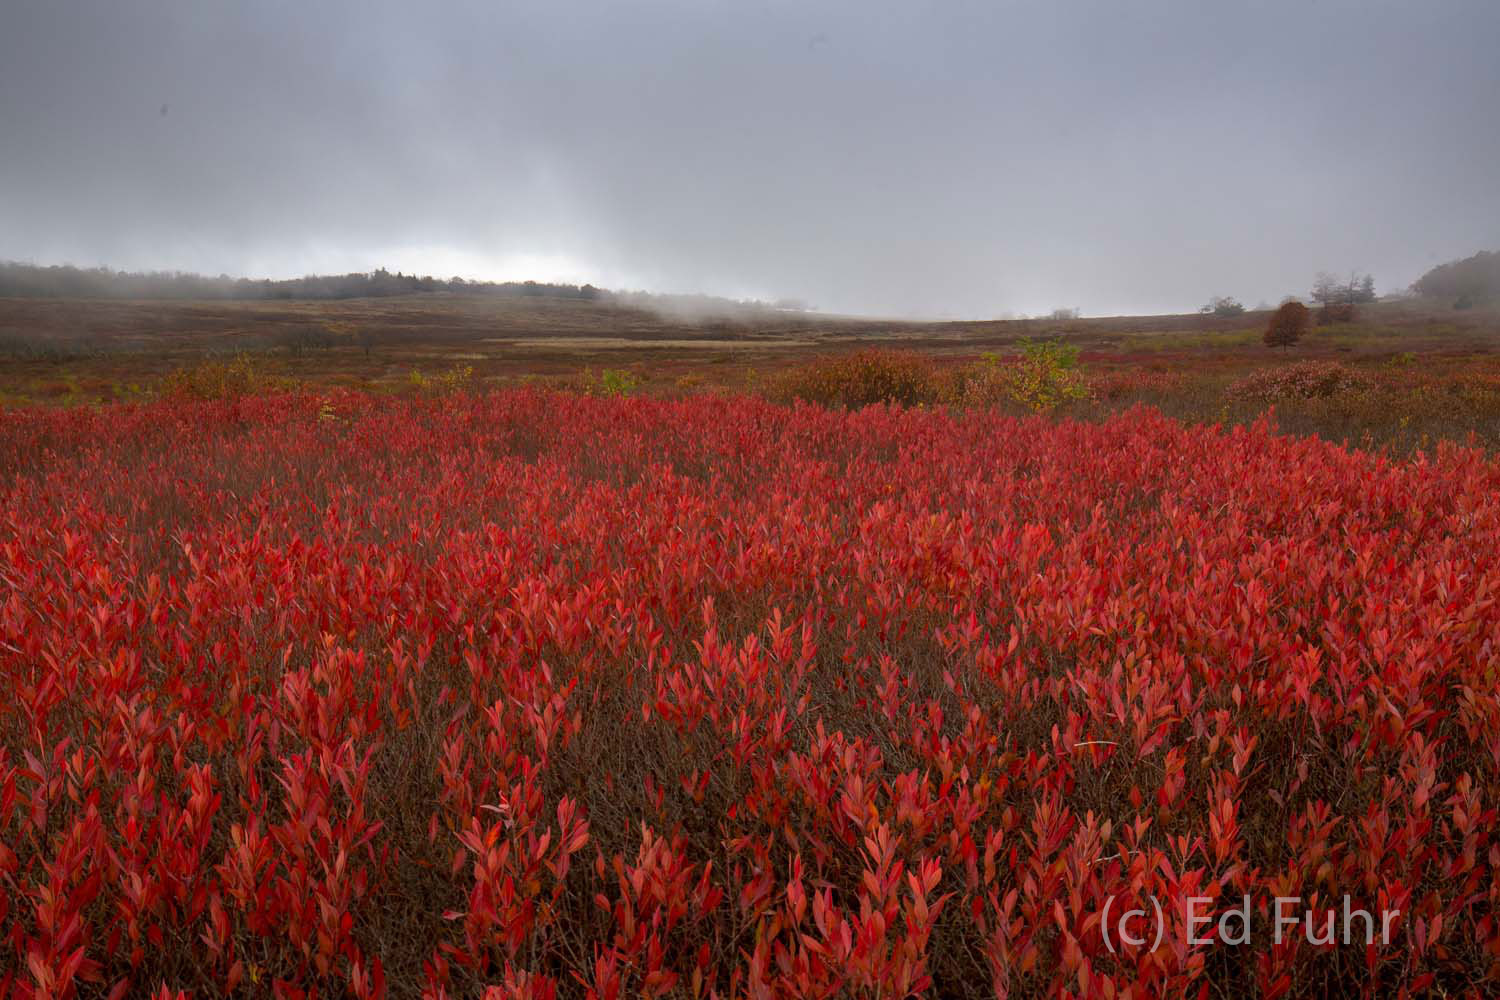 A large swath of blueberry bushes in Big Meadows, in their autumn red, hunker down as a storm approaches from the west.  It is...